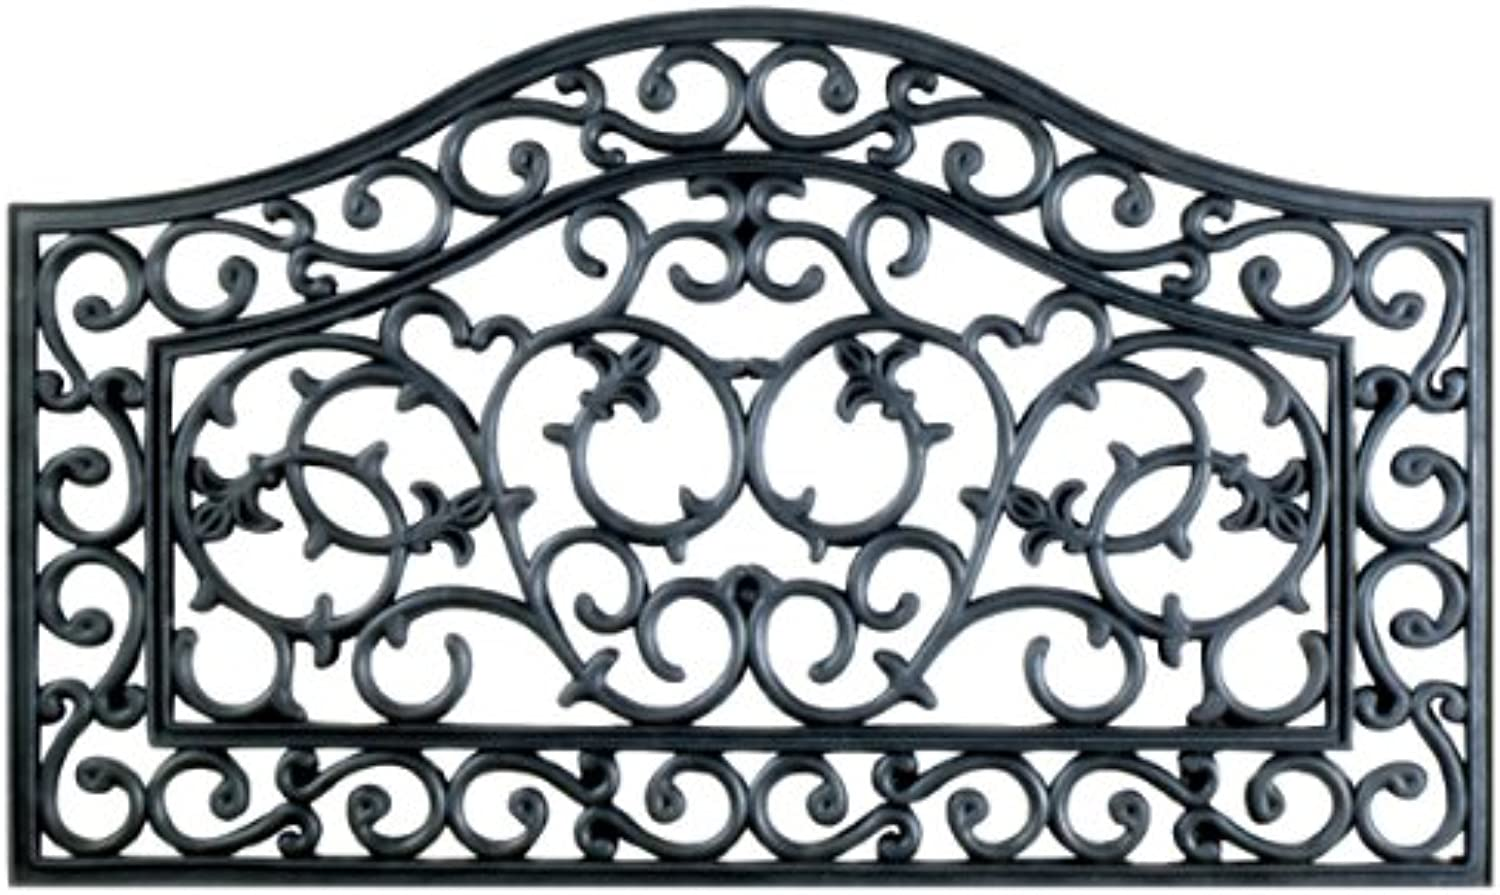 Imports Decor Rubber Doormat, Country Gate, 18-Inch by 30-Inch